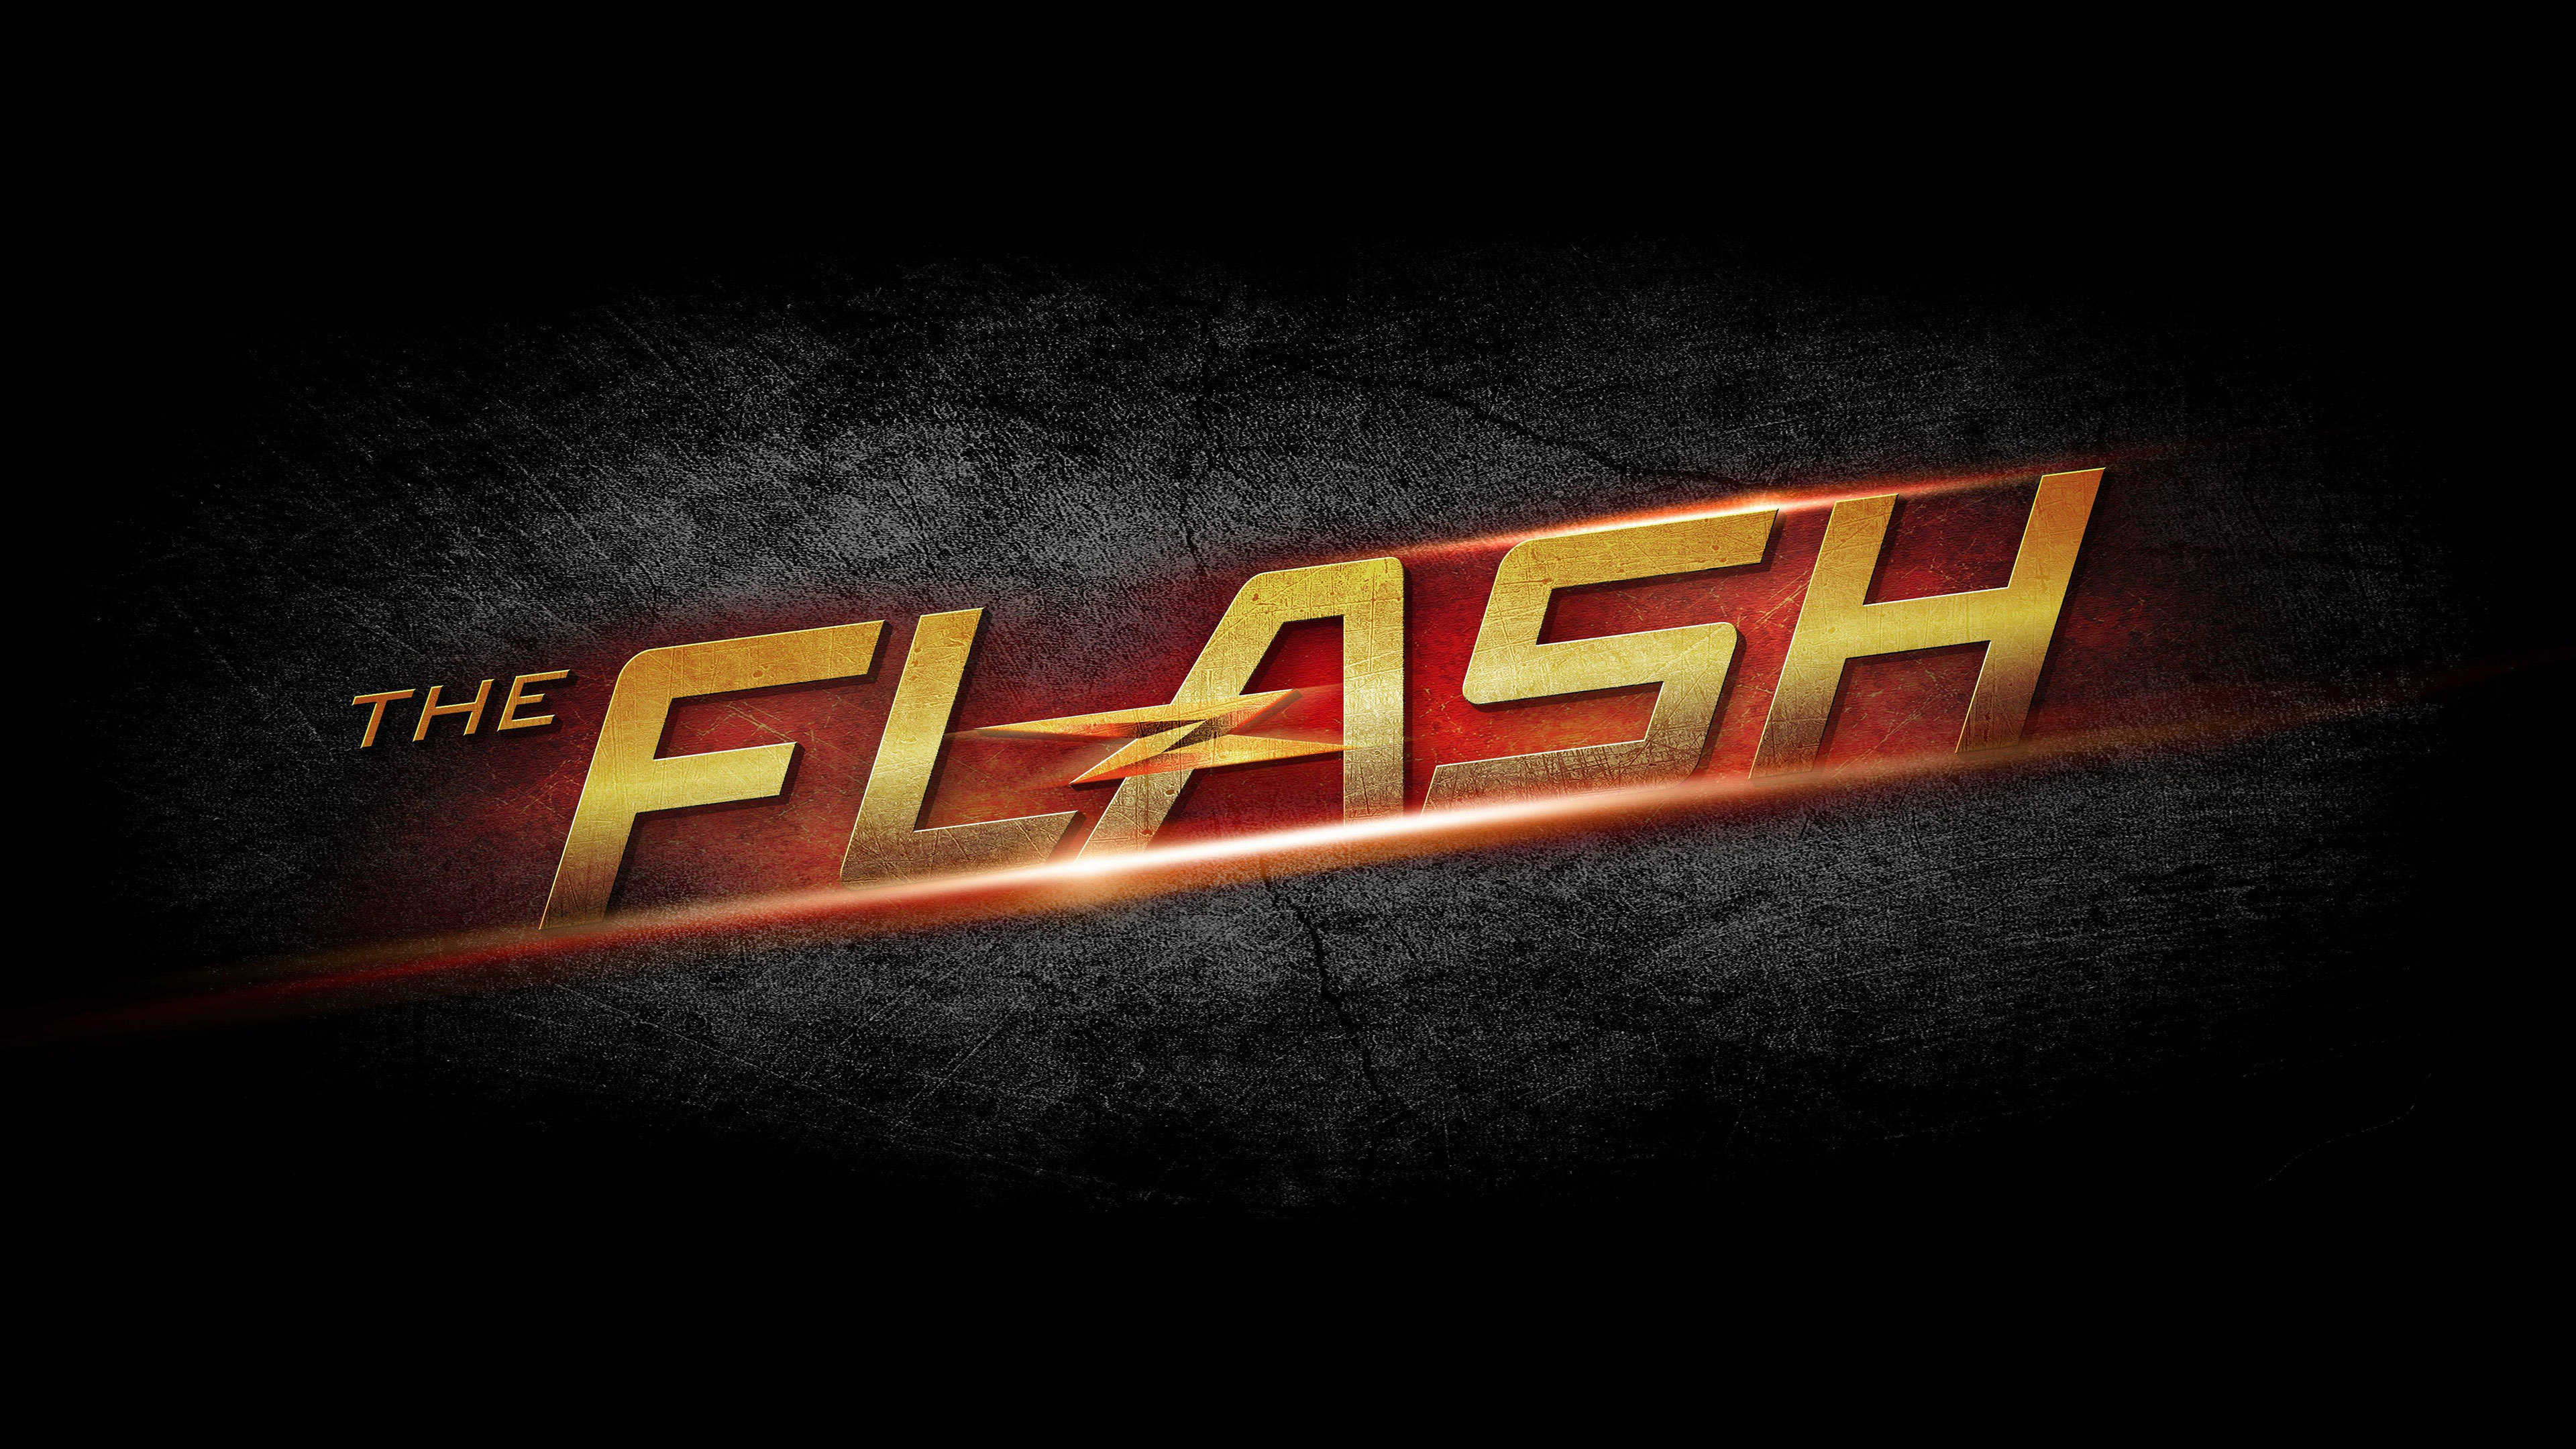 Wallpaper The Flash Logo Desktop Wallpaper Upload at November 1 3840x2160